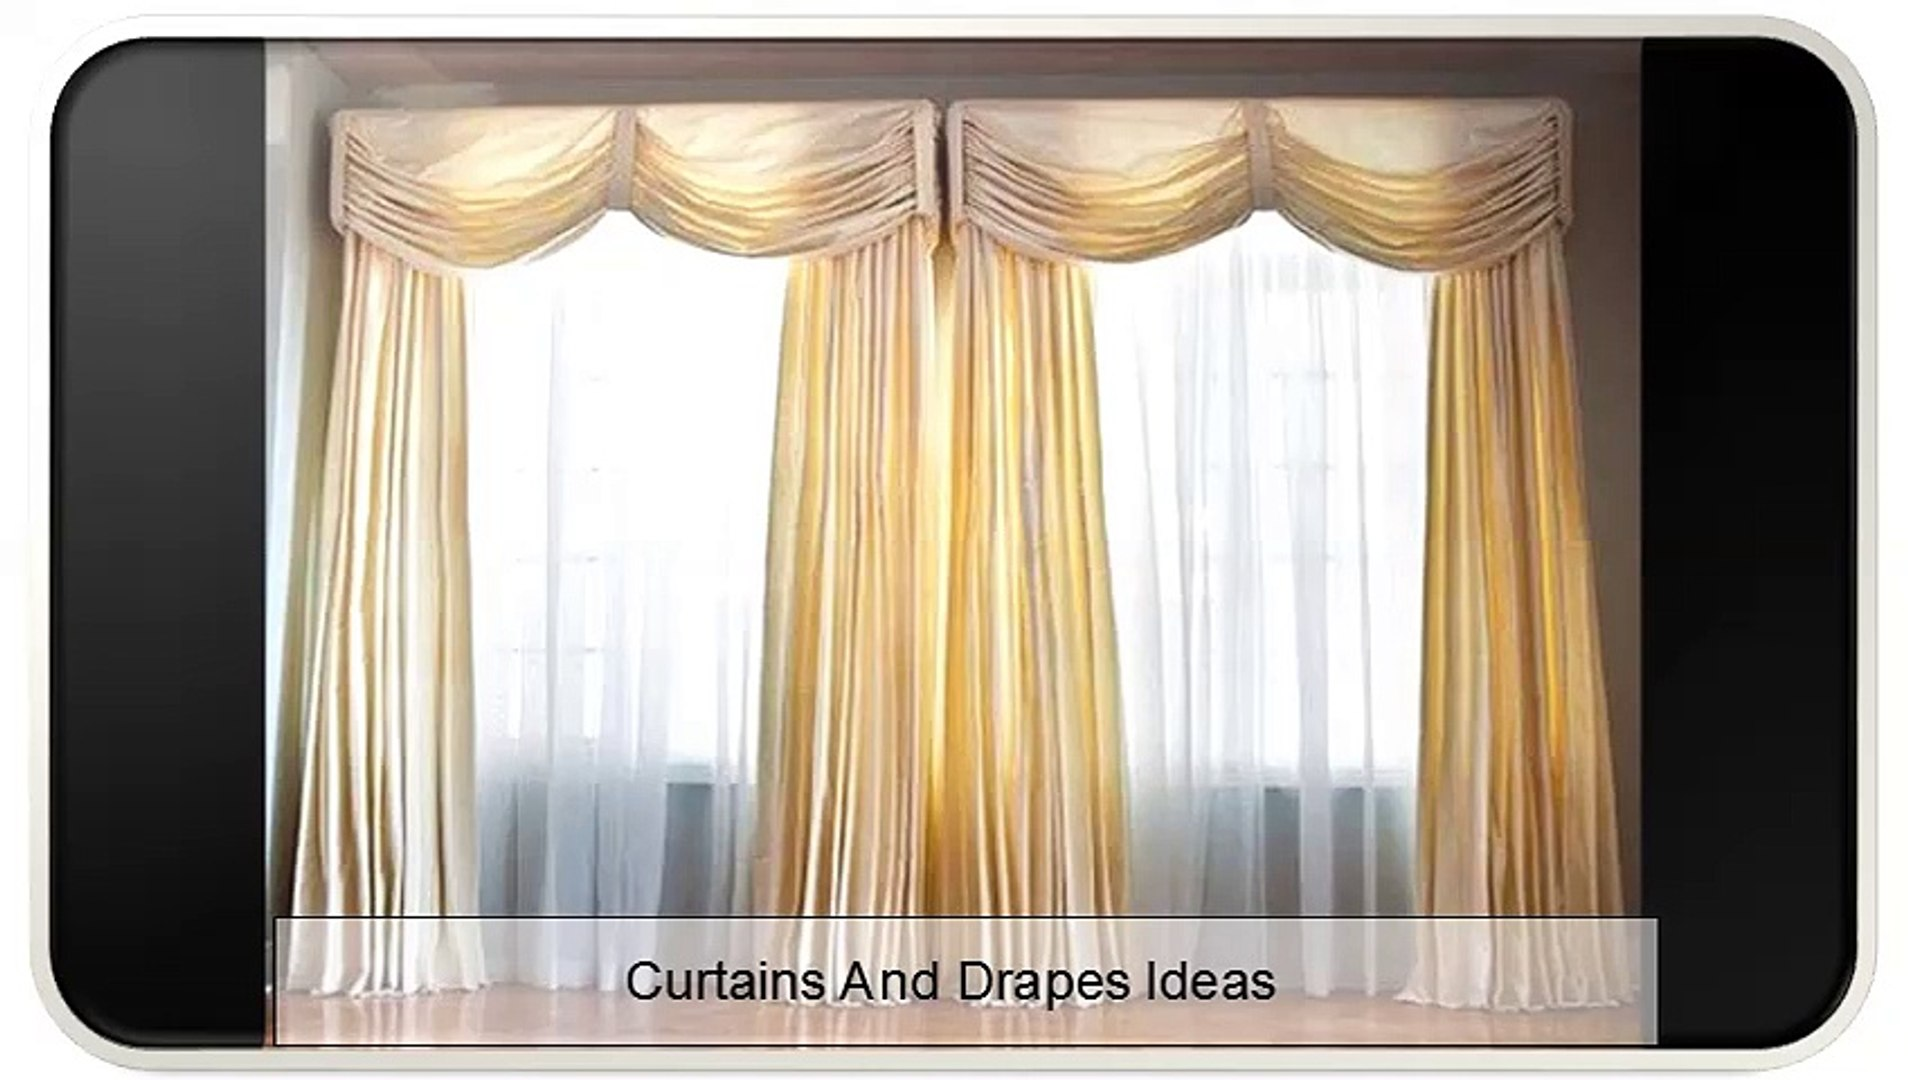 Curtains And Drapes Ideas Video Dailymotion